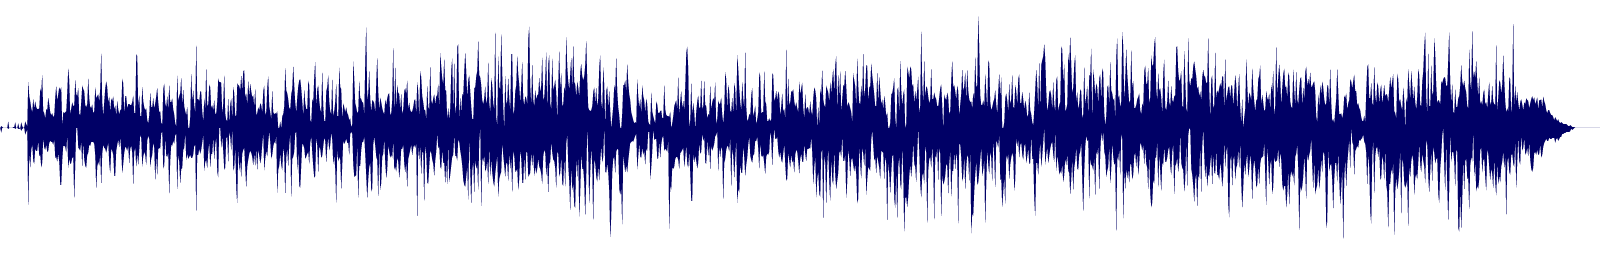 waveform of track #90253